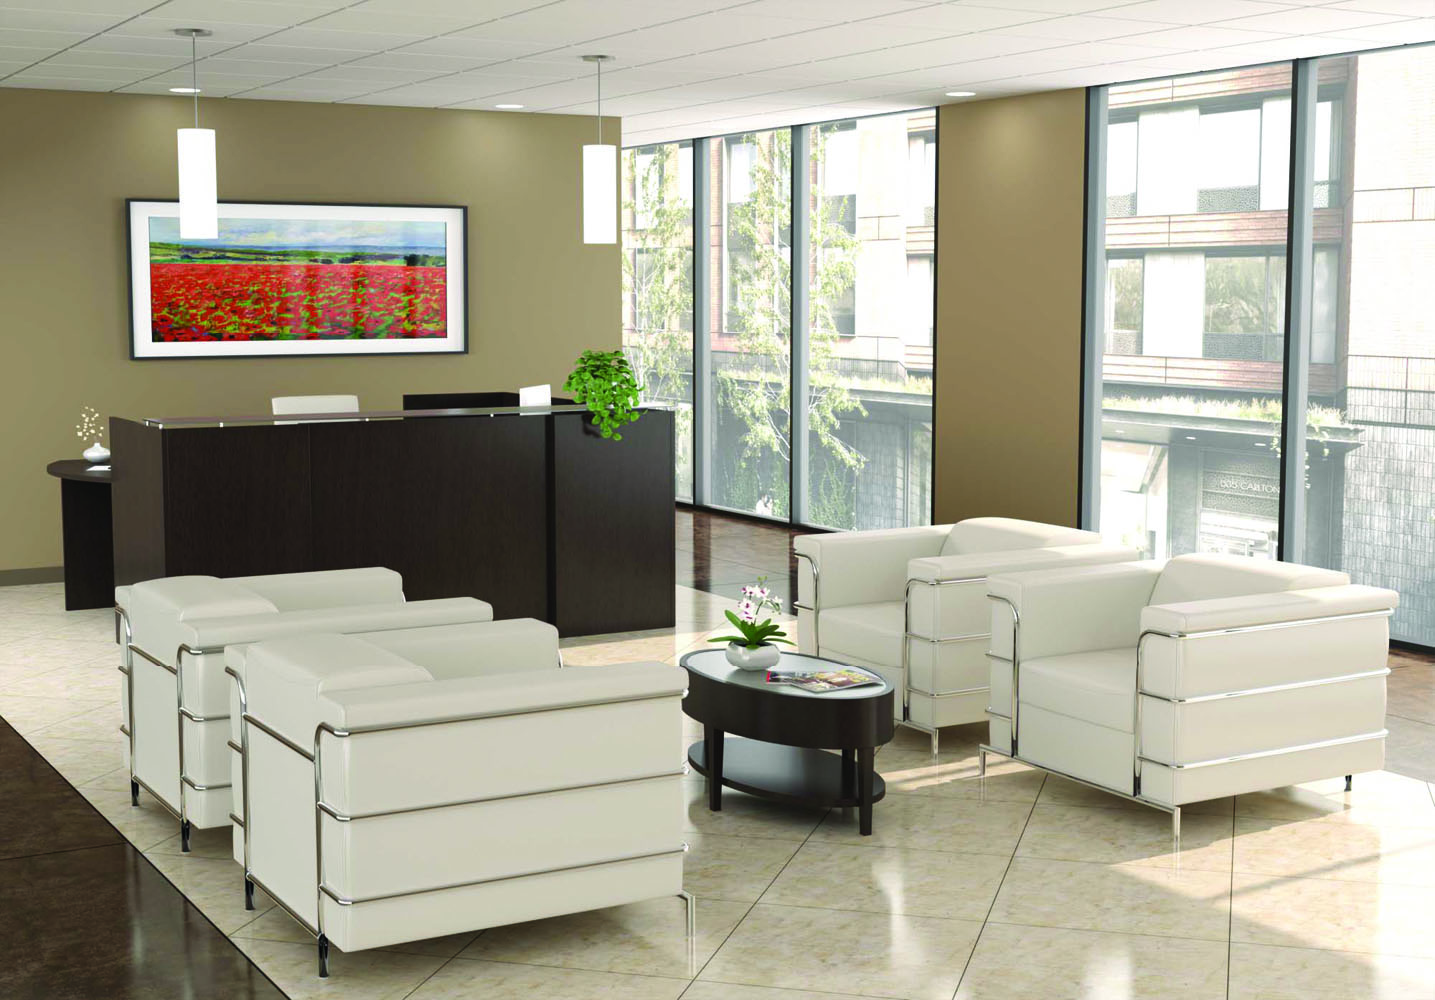 Office Lobby Design   First Impressions Office Furniture Sets Ideas